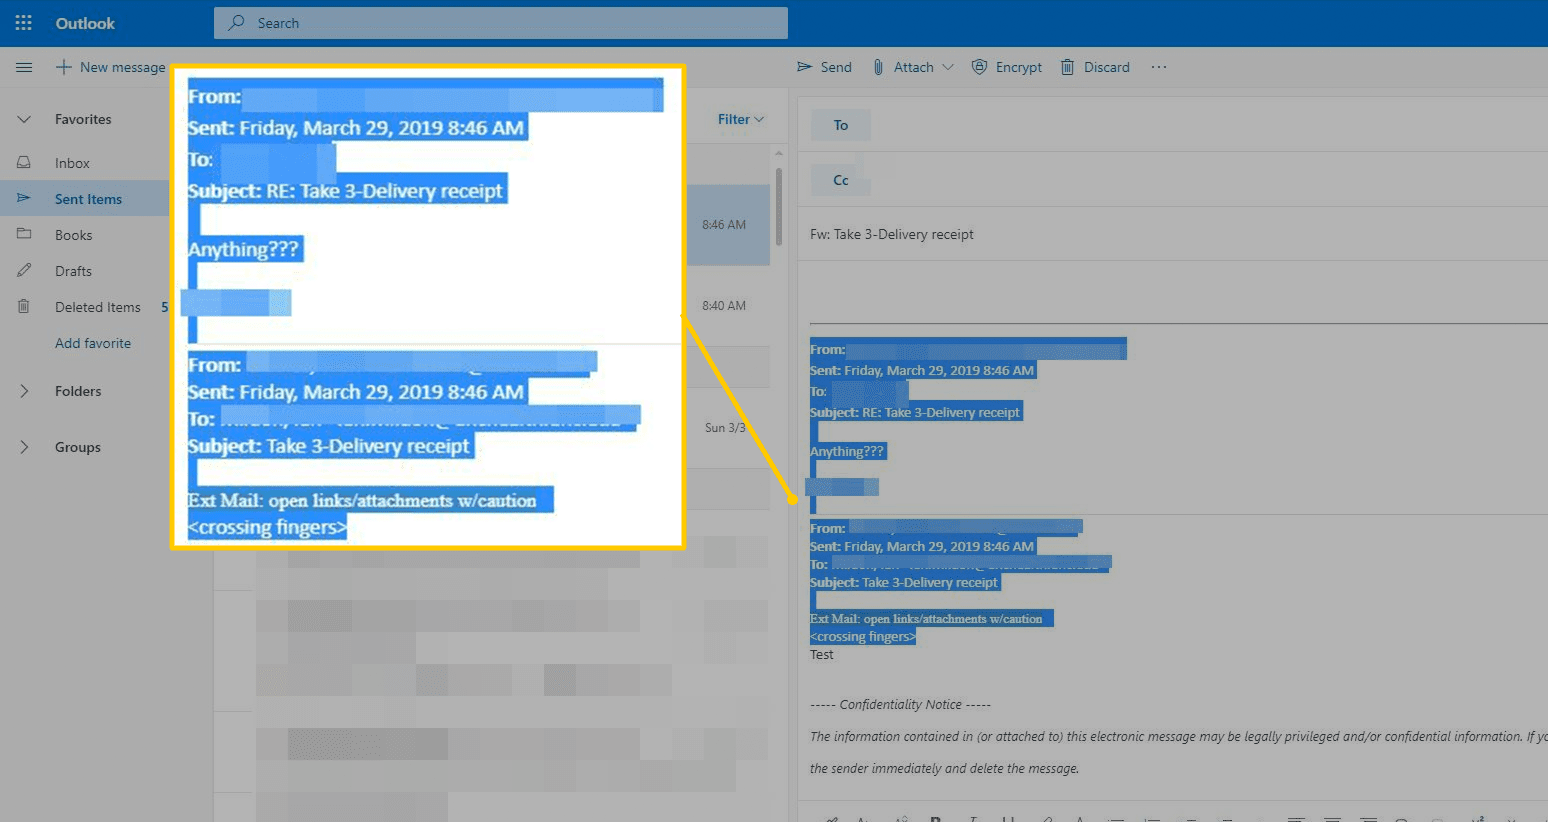 Email body text to remove in Outlook